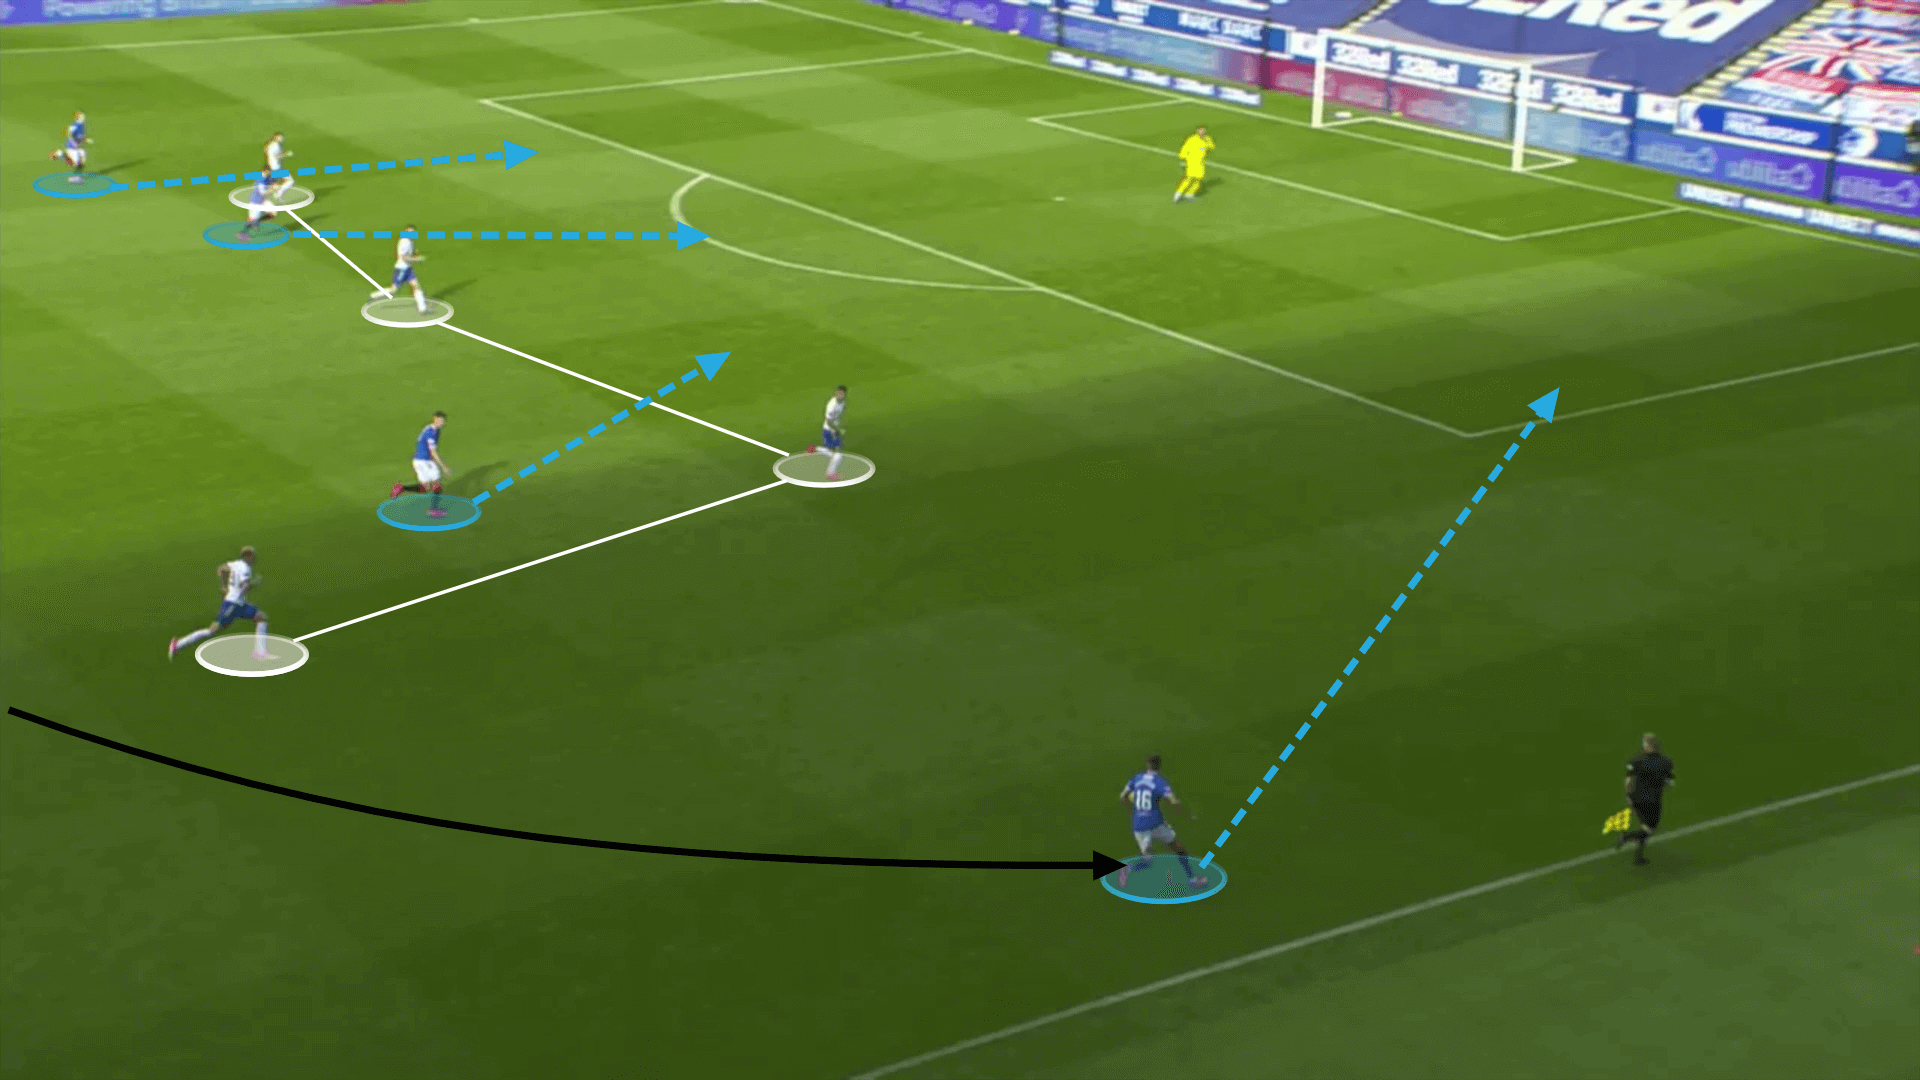 Scottish Premiership 2020/21: Rangers v Kilmarnock - tactical analysis - tactics